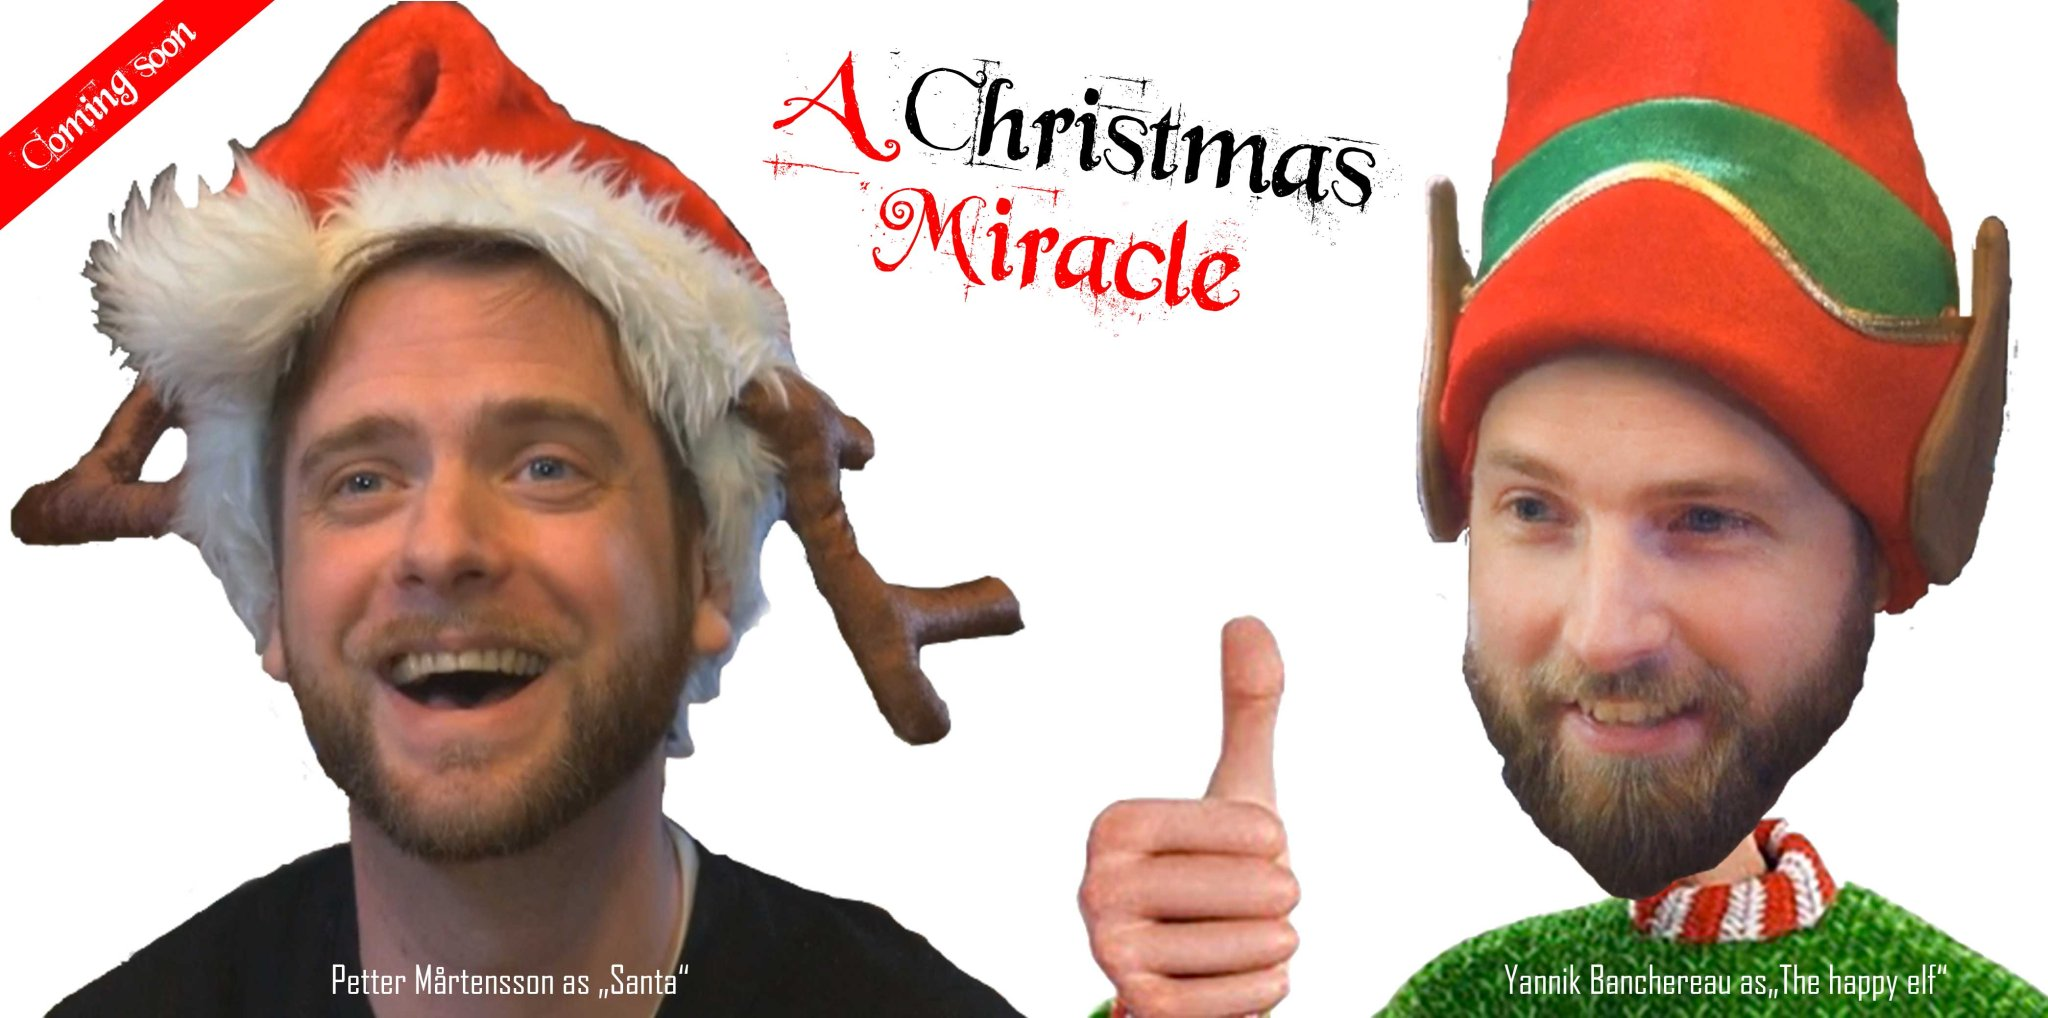 01-02-2018 [News] SotG_A_Christmas_Miracle